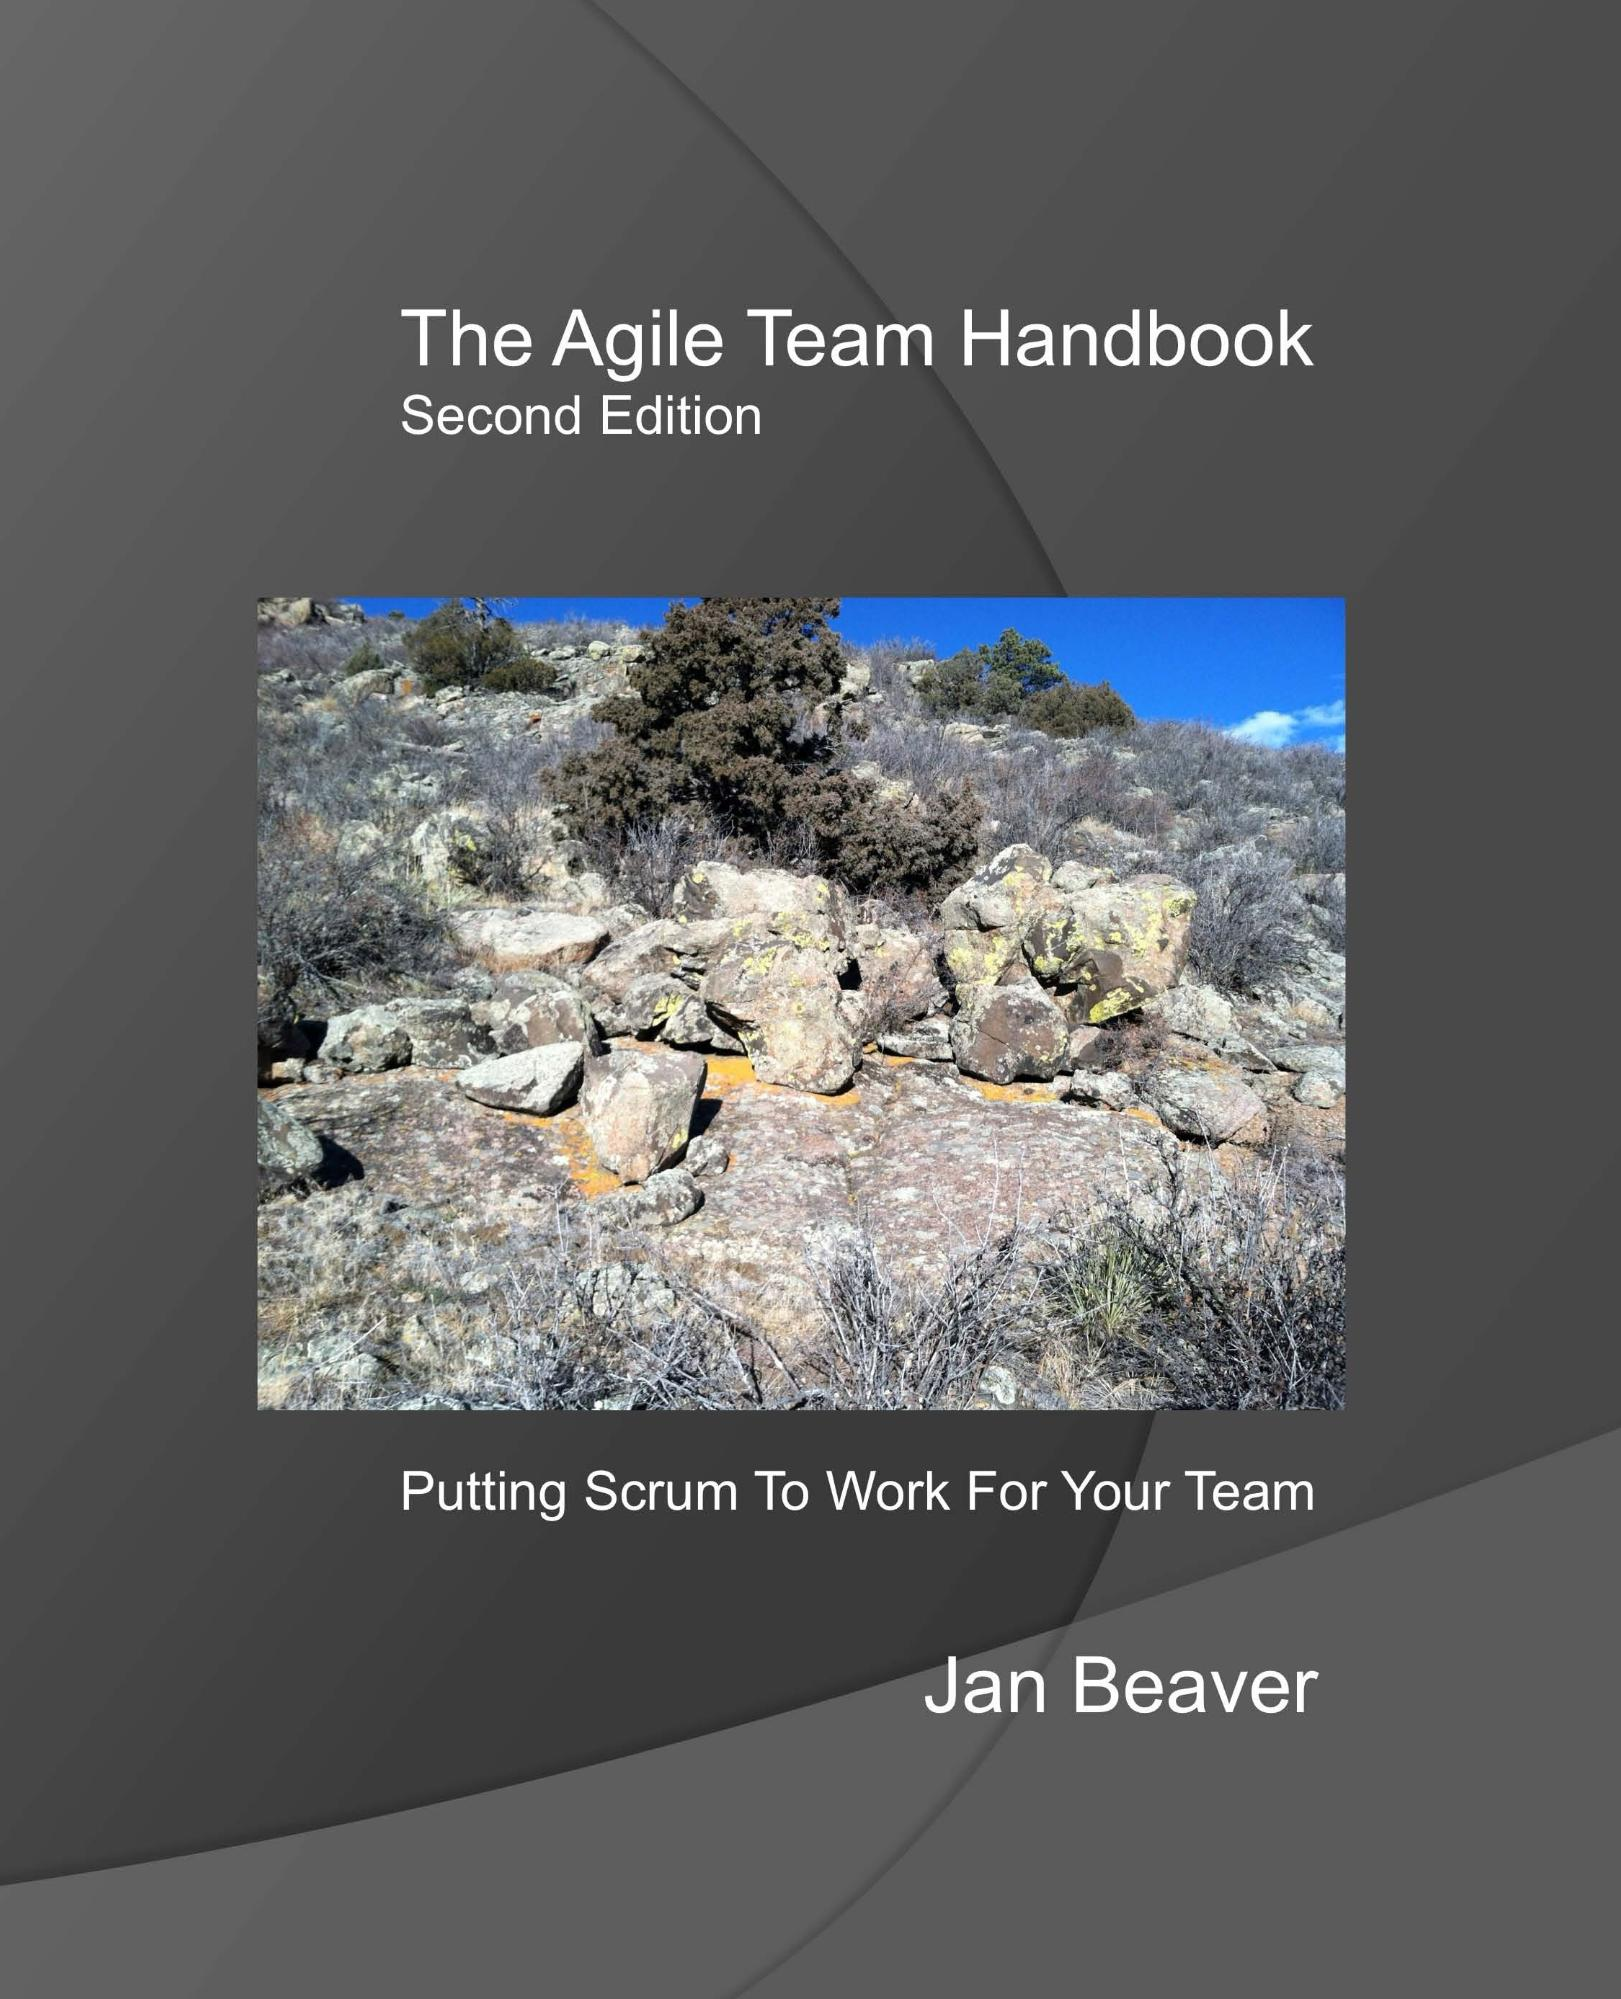 The Agile Team Handbook, Second Edition